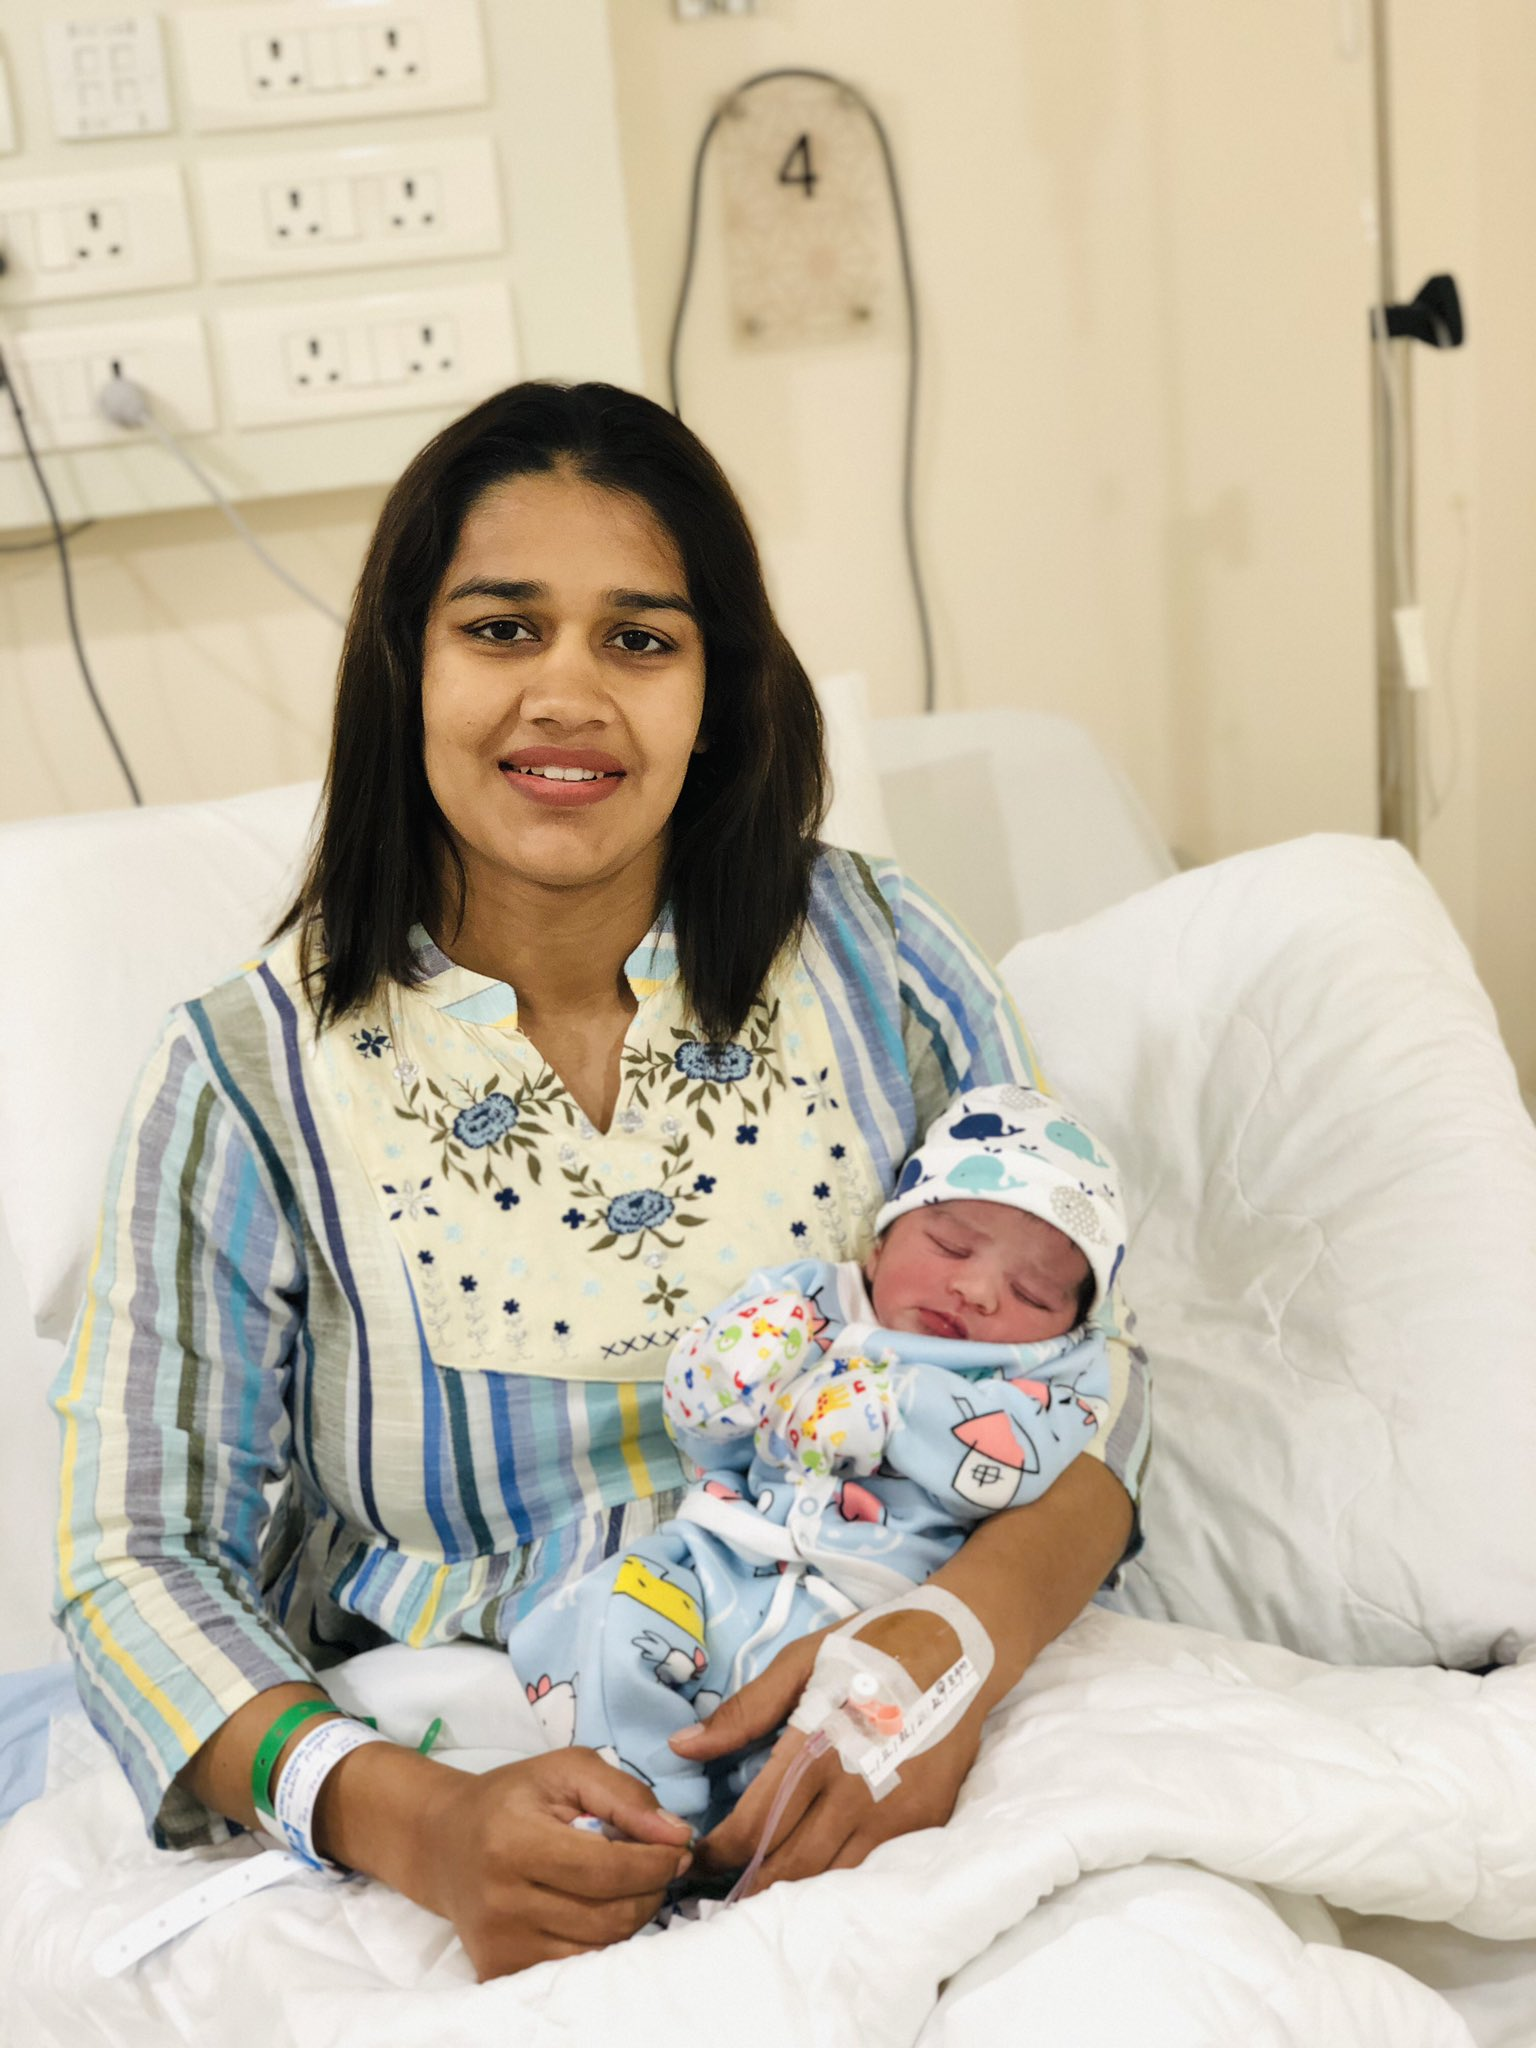 Renowned wrestler Babita Phogat and her husband Vivek Suhag also announced the birth of their baby on the very same day.